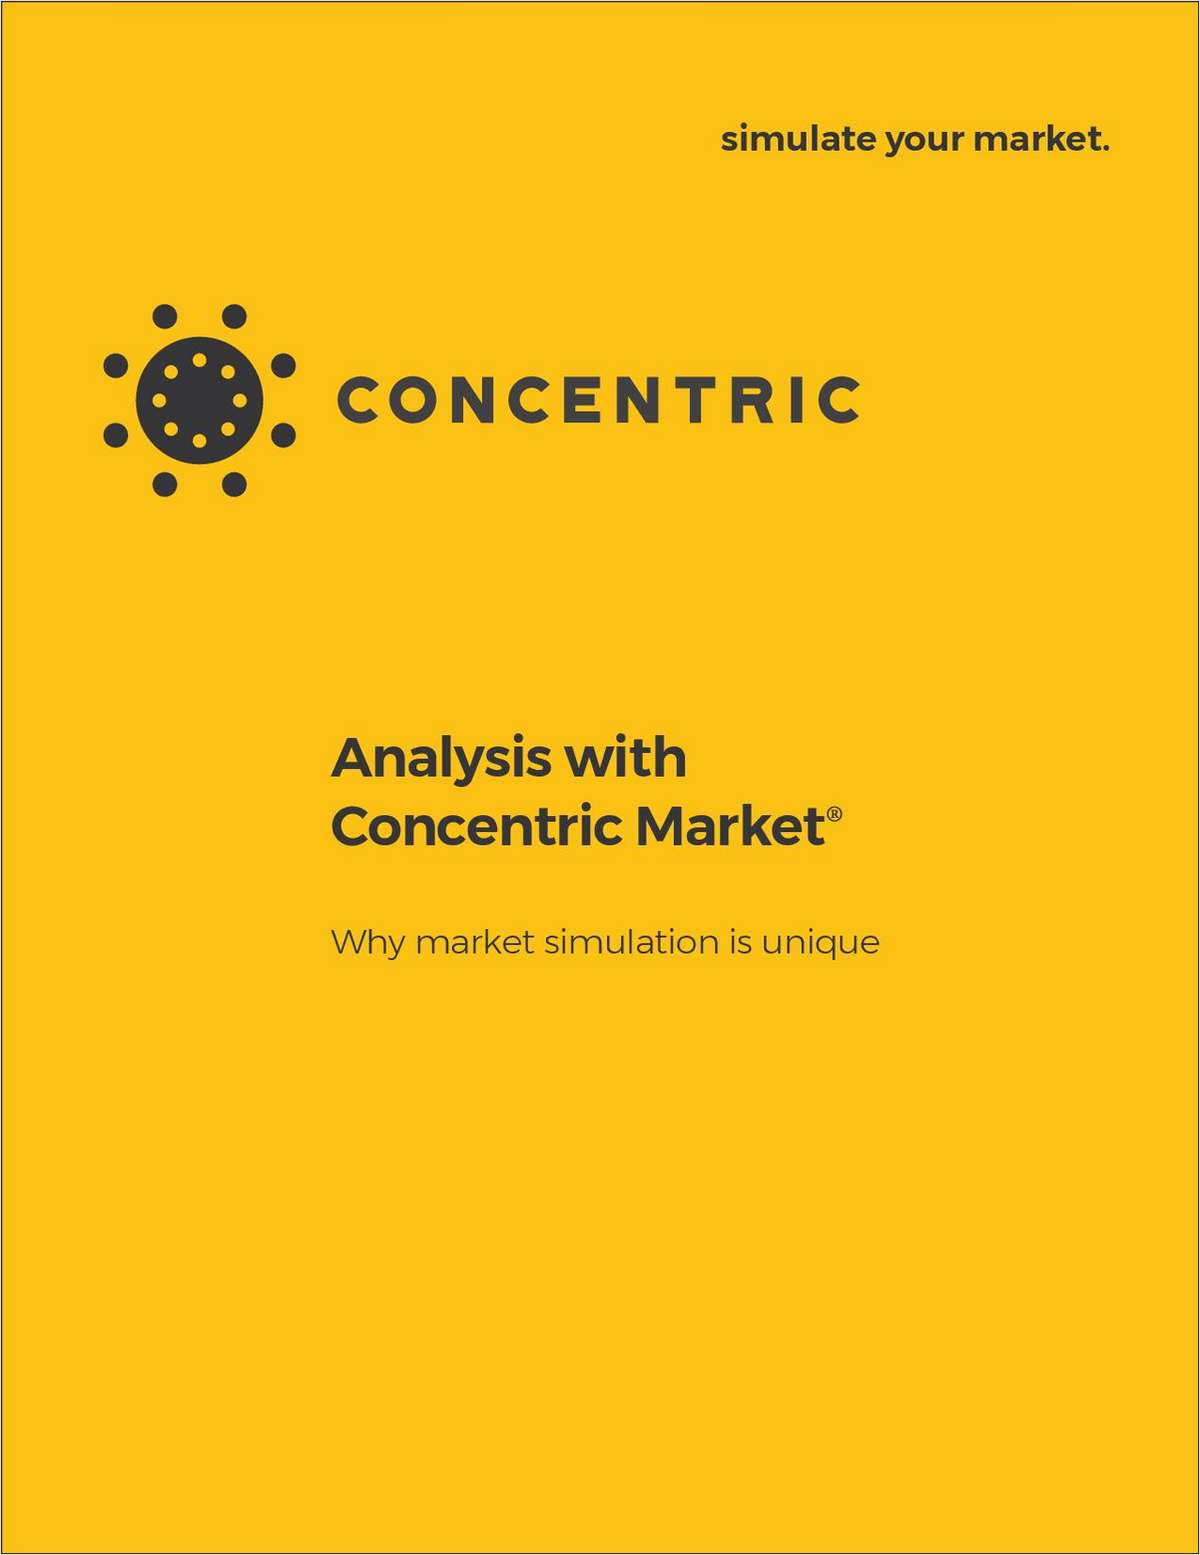 Analysis with Concentric Market: Why Market Simulation is Unique